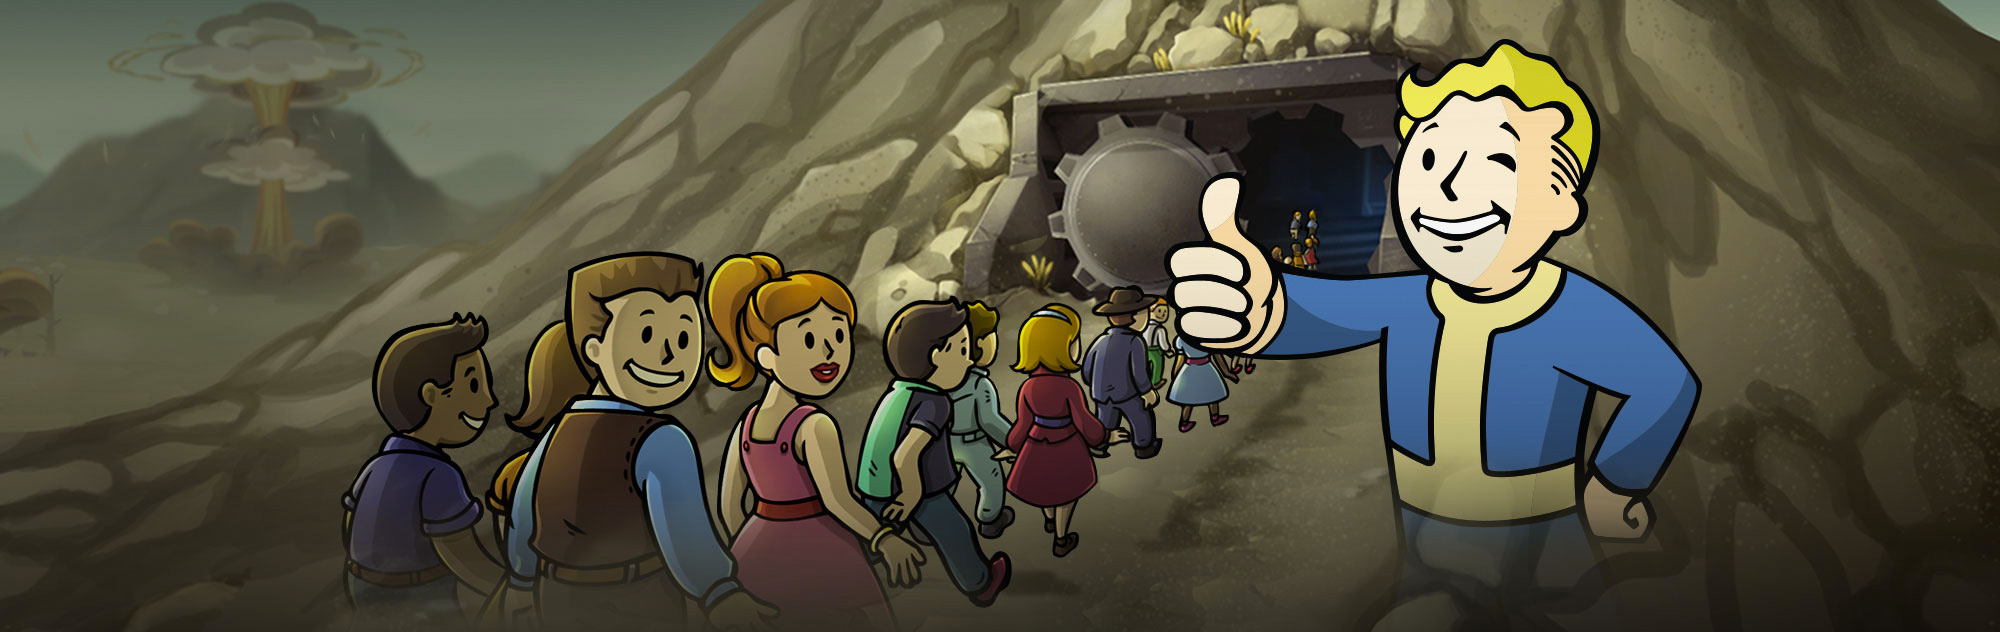 Fallout Shelter Header